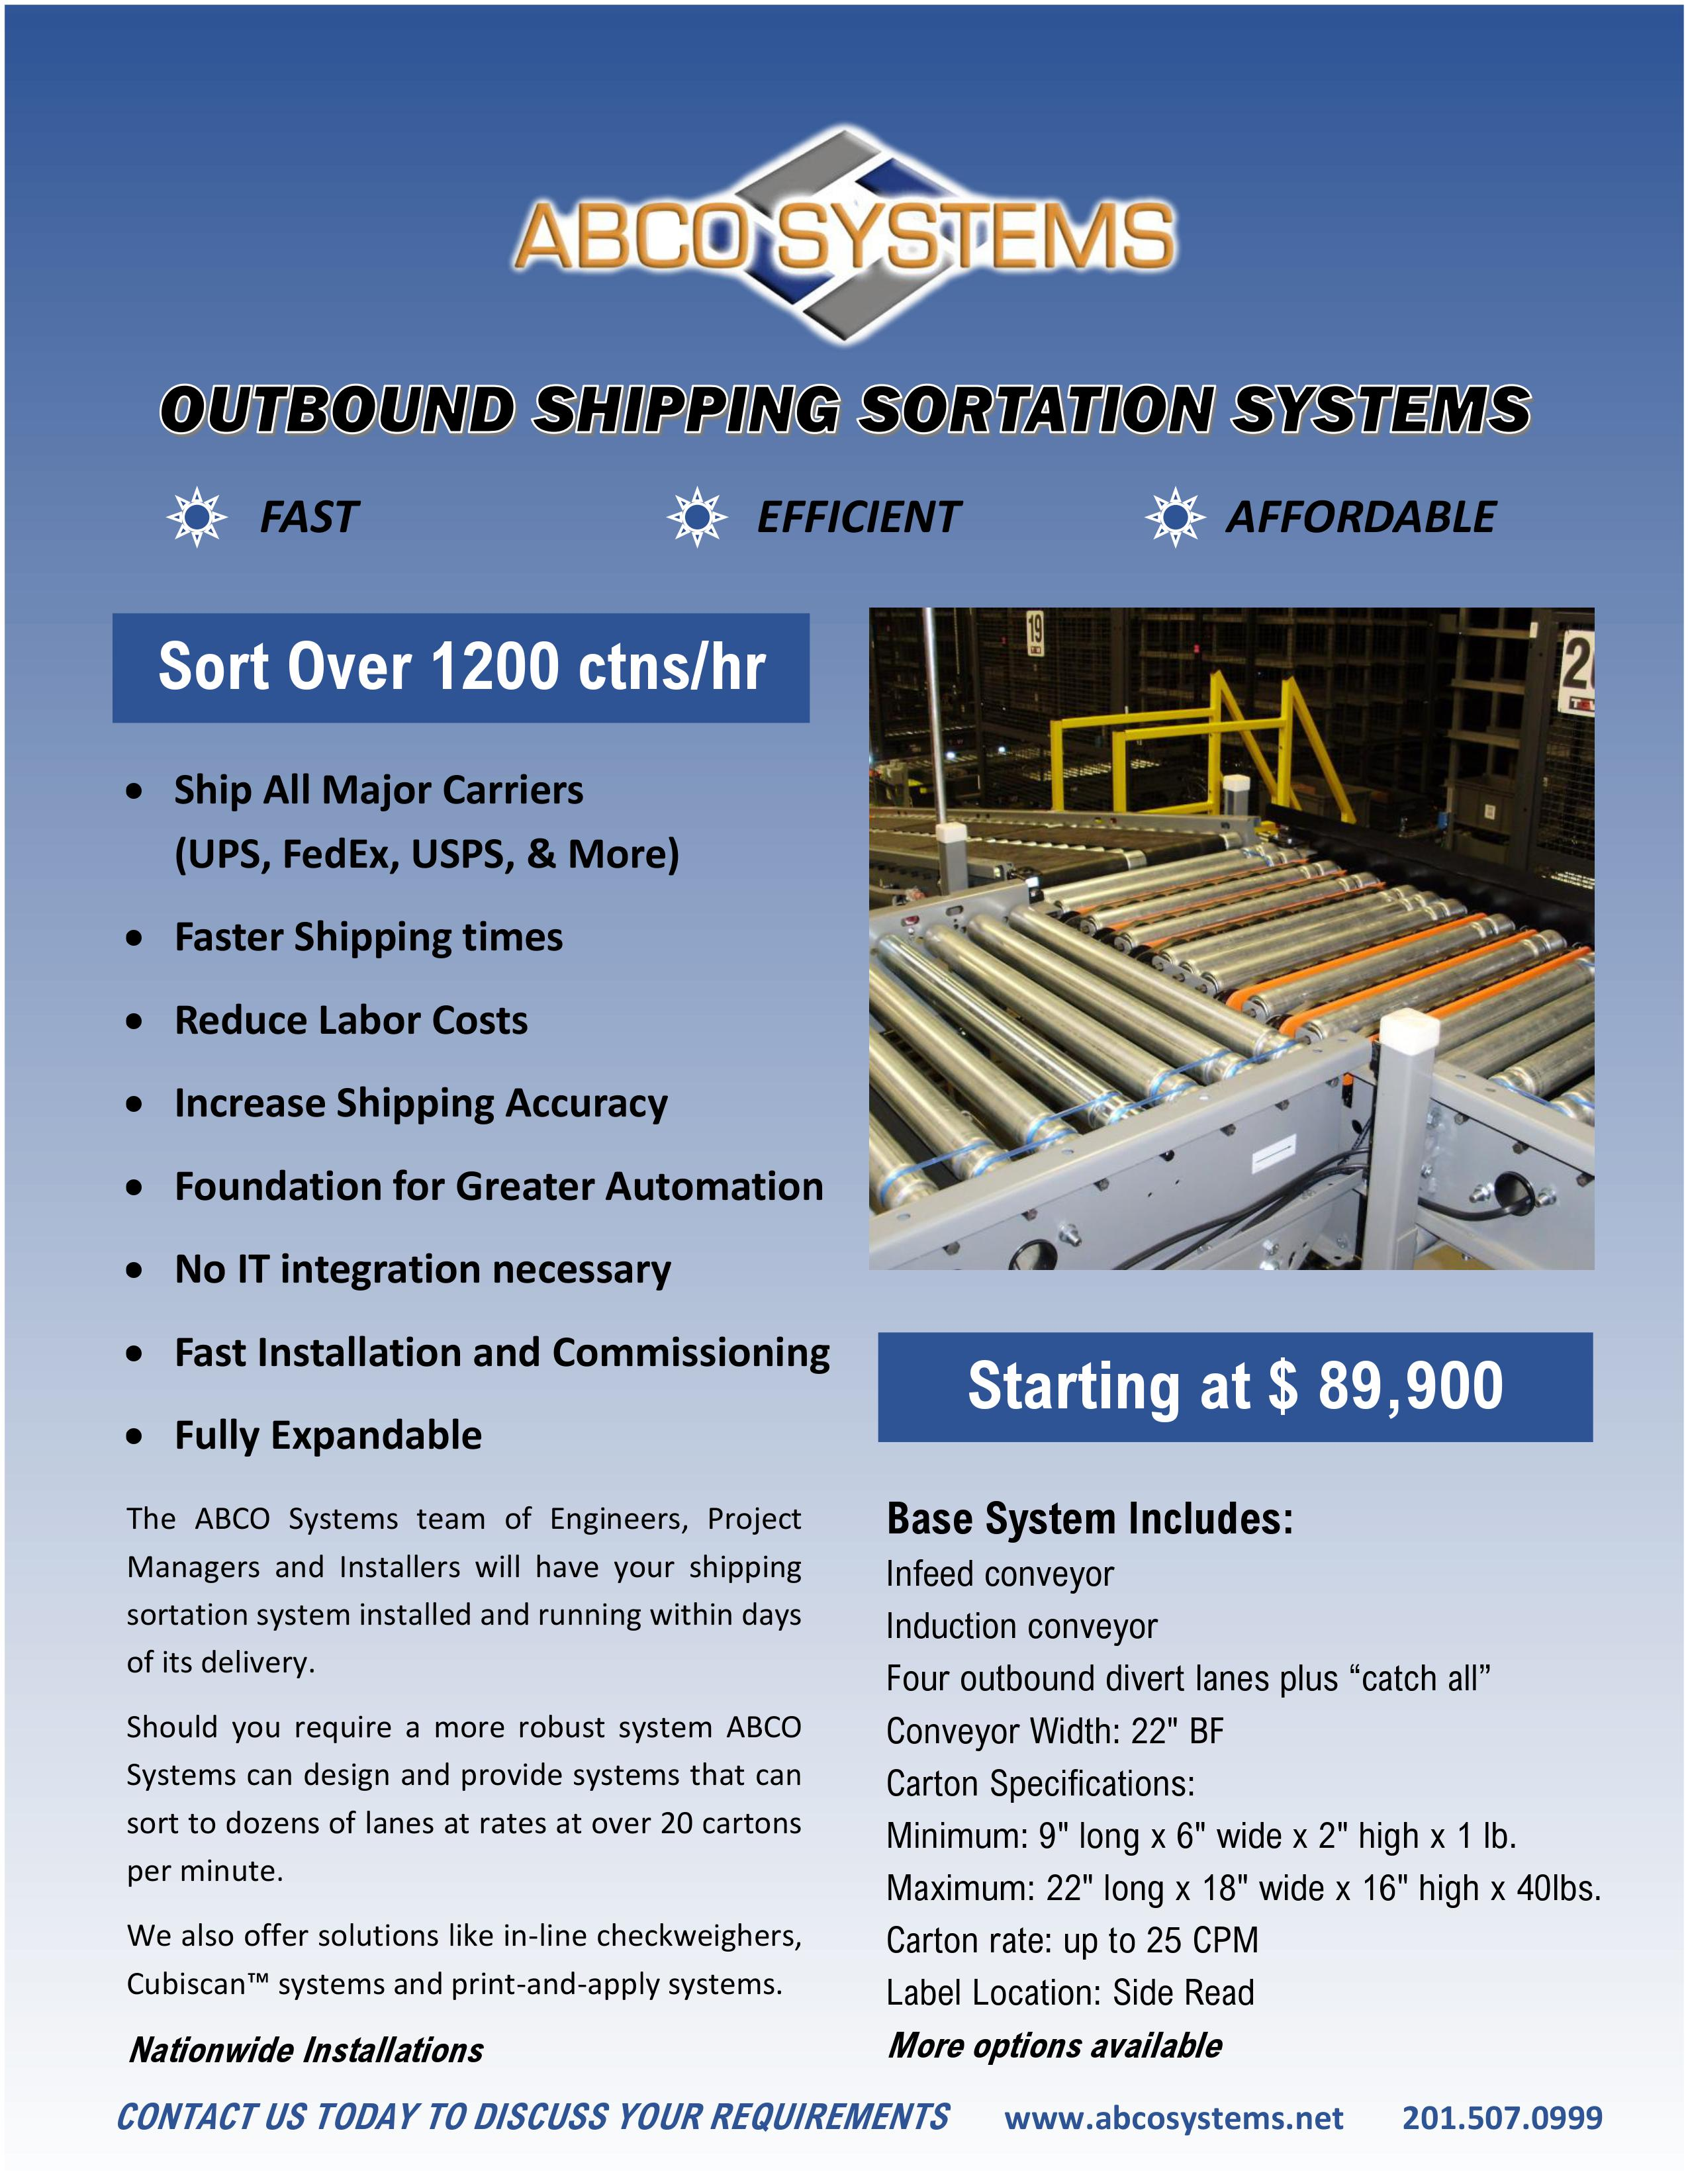 Outbound Shipping Sortation